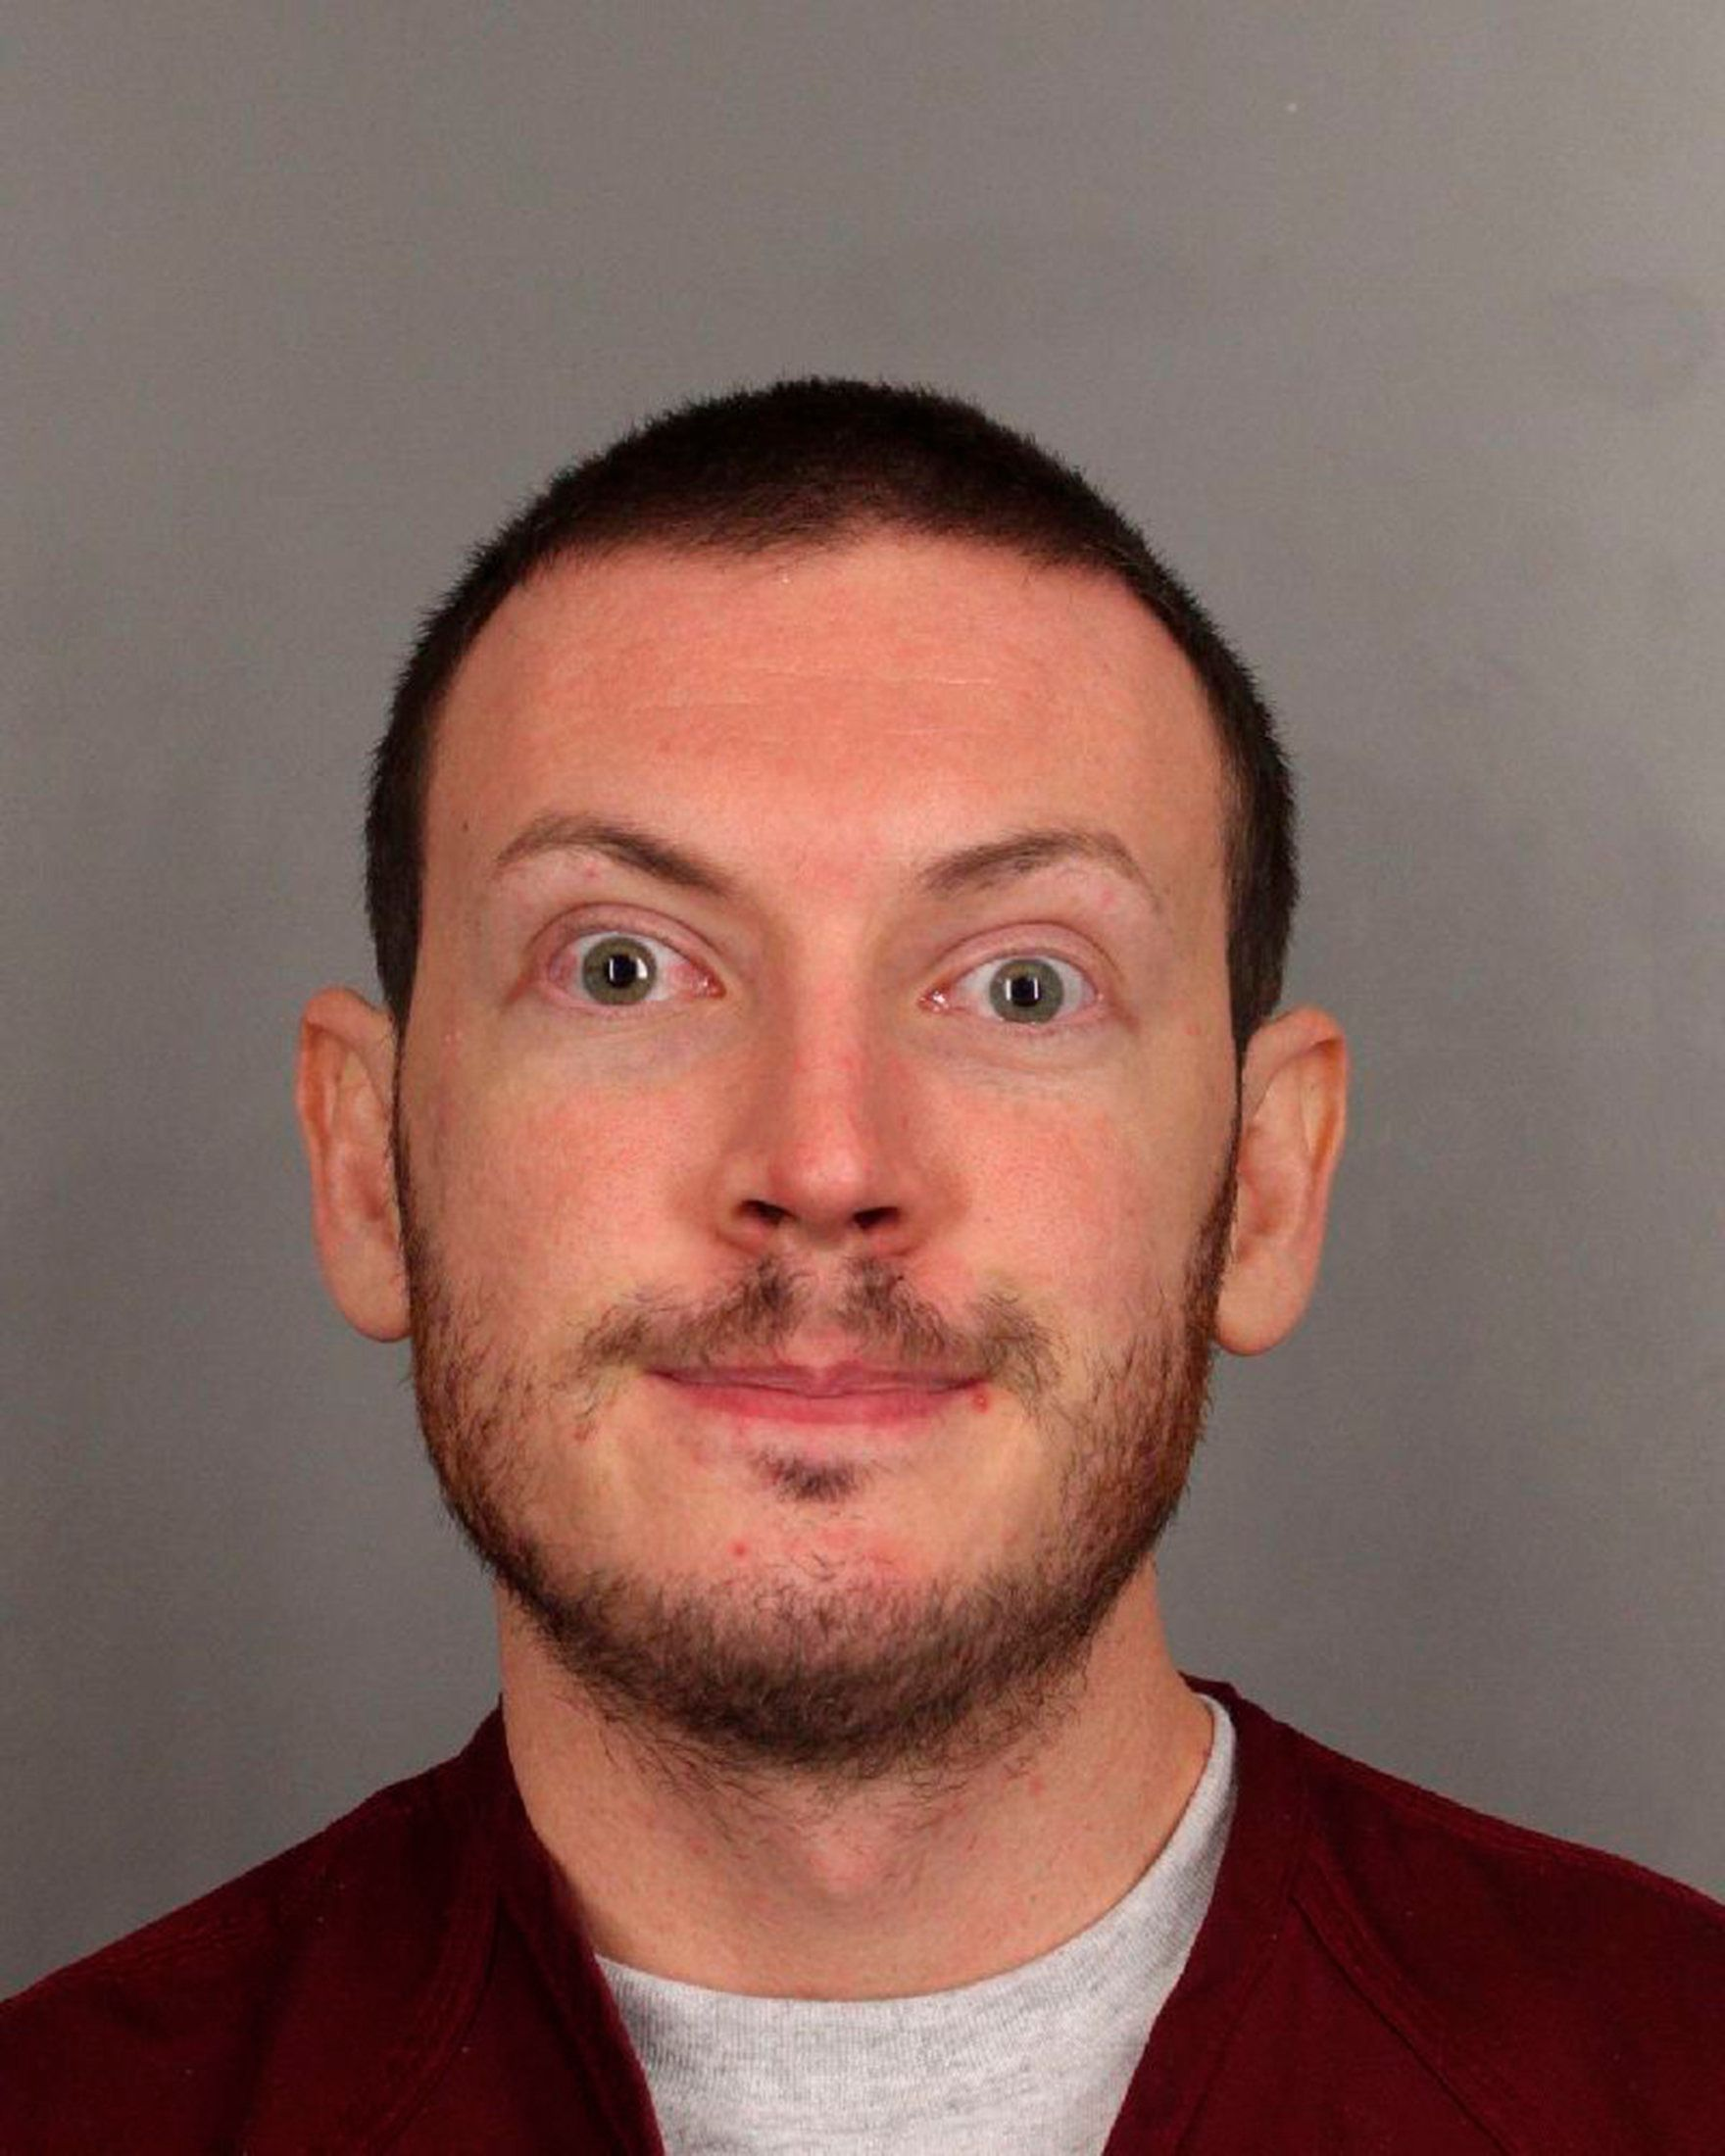 "James Holmes is seen in this undated police handout photo. Holmes, a former neuroscience graduate student, is accused of opening fire on July 20 at a midnight screening of the Batman movie ""The Dark Knight Rises"" in Aurora, a Denver suburb. Twelve people were killed and 58 wounded in the attack. REUTERS/Arapahoe County Sheriff's Office/Handout (UNITED STATES - Tags: CRIME LAW HEADSHOT TPX IMAGES OF THE DAY) FOR EDITORIAL USE ONLY. NOT FOR SALE FOR MARKETING OR ADVERTISING CAMPAIGNS. THIS IMAGE HAS BEEN SUPPLIED BY A THIRD PARTY. IT IS DISTRIBUTED, EXACTLY AS RECEIVED BY REUTERS, AS A SERVICE TO CLIENTS"